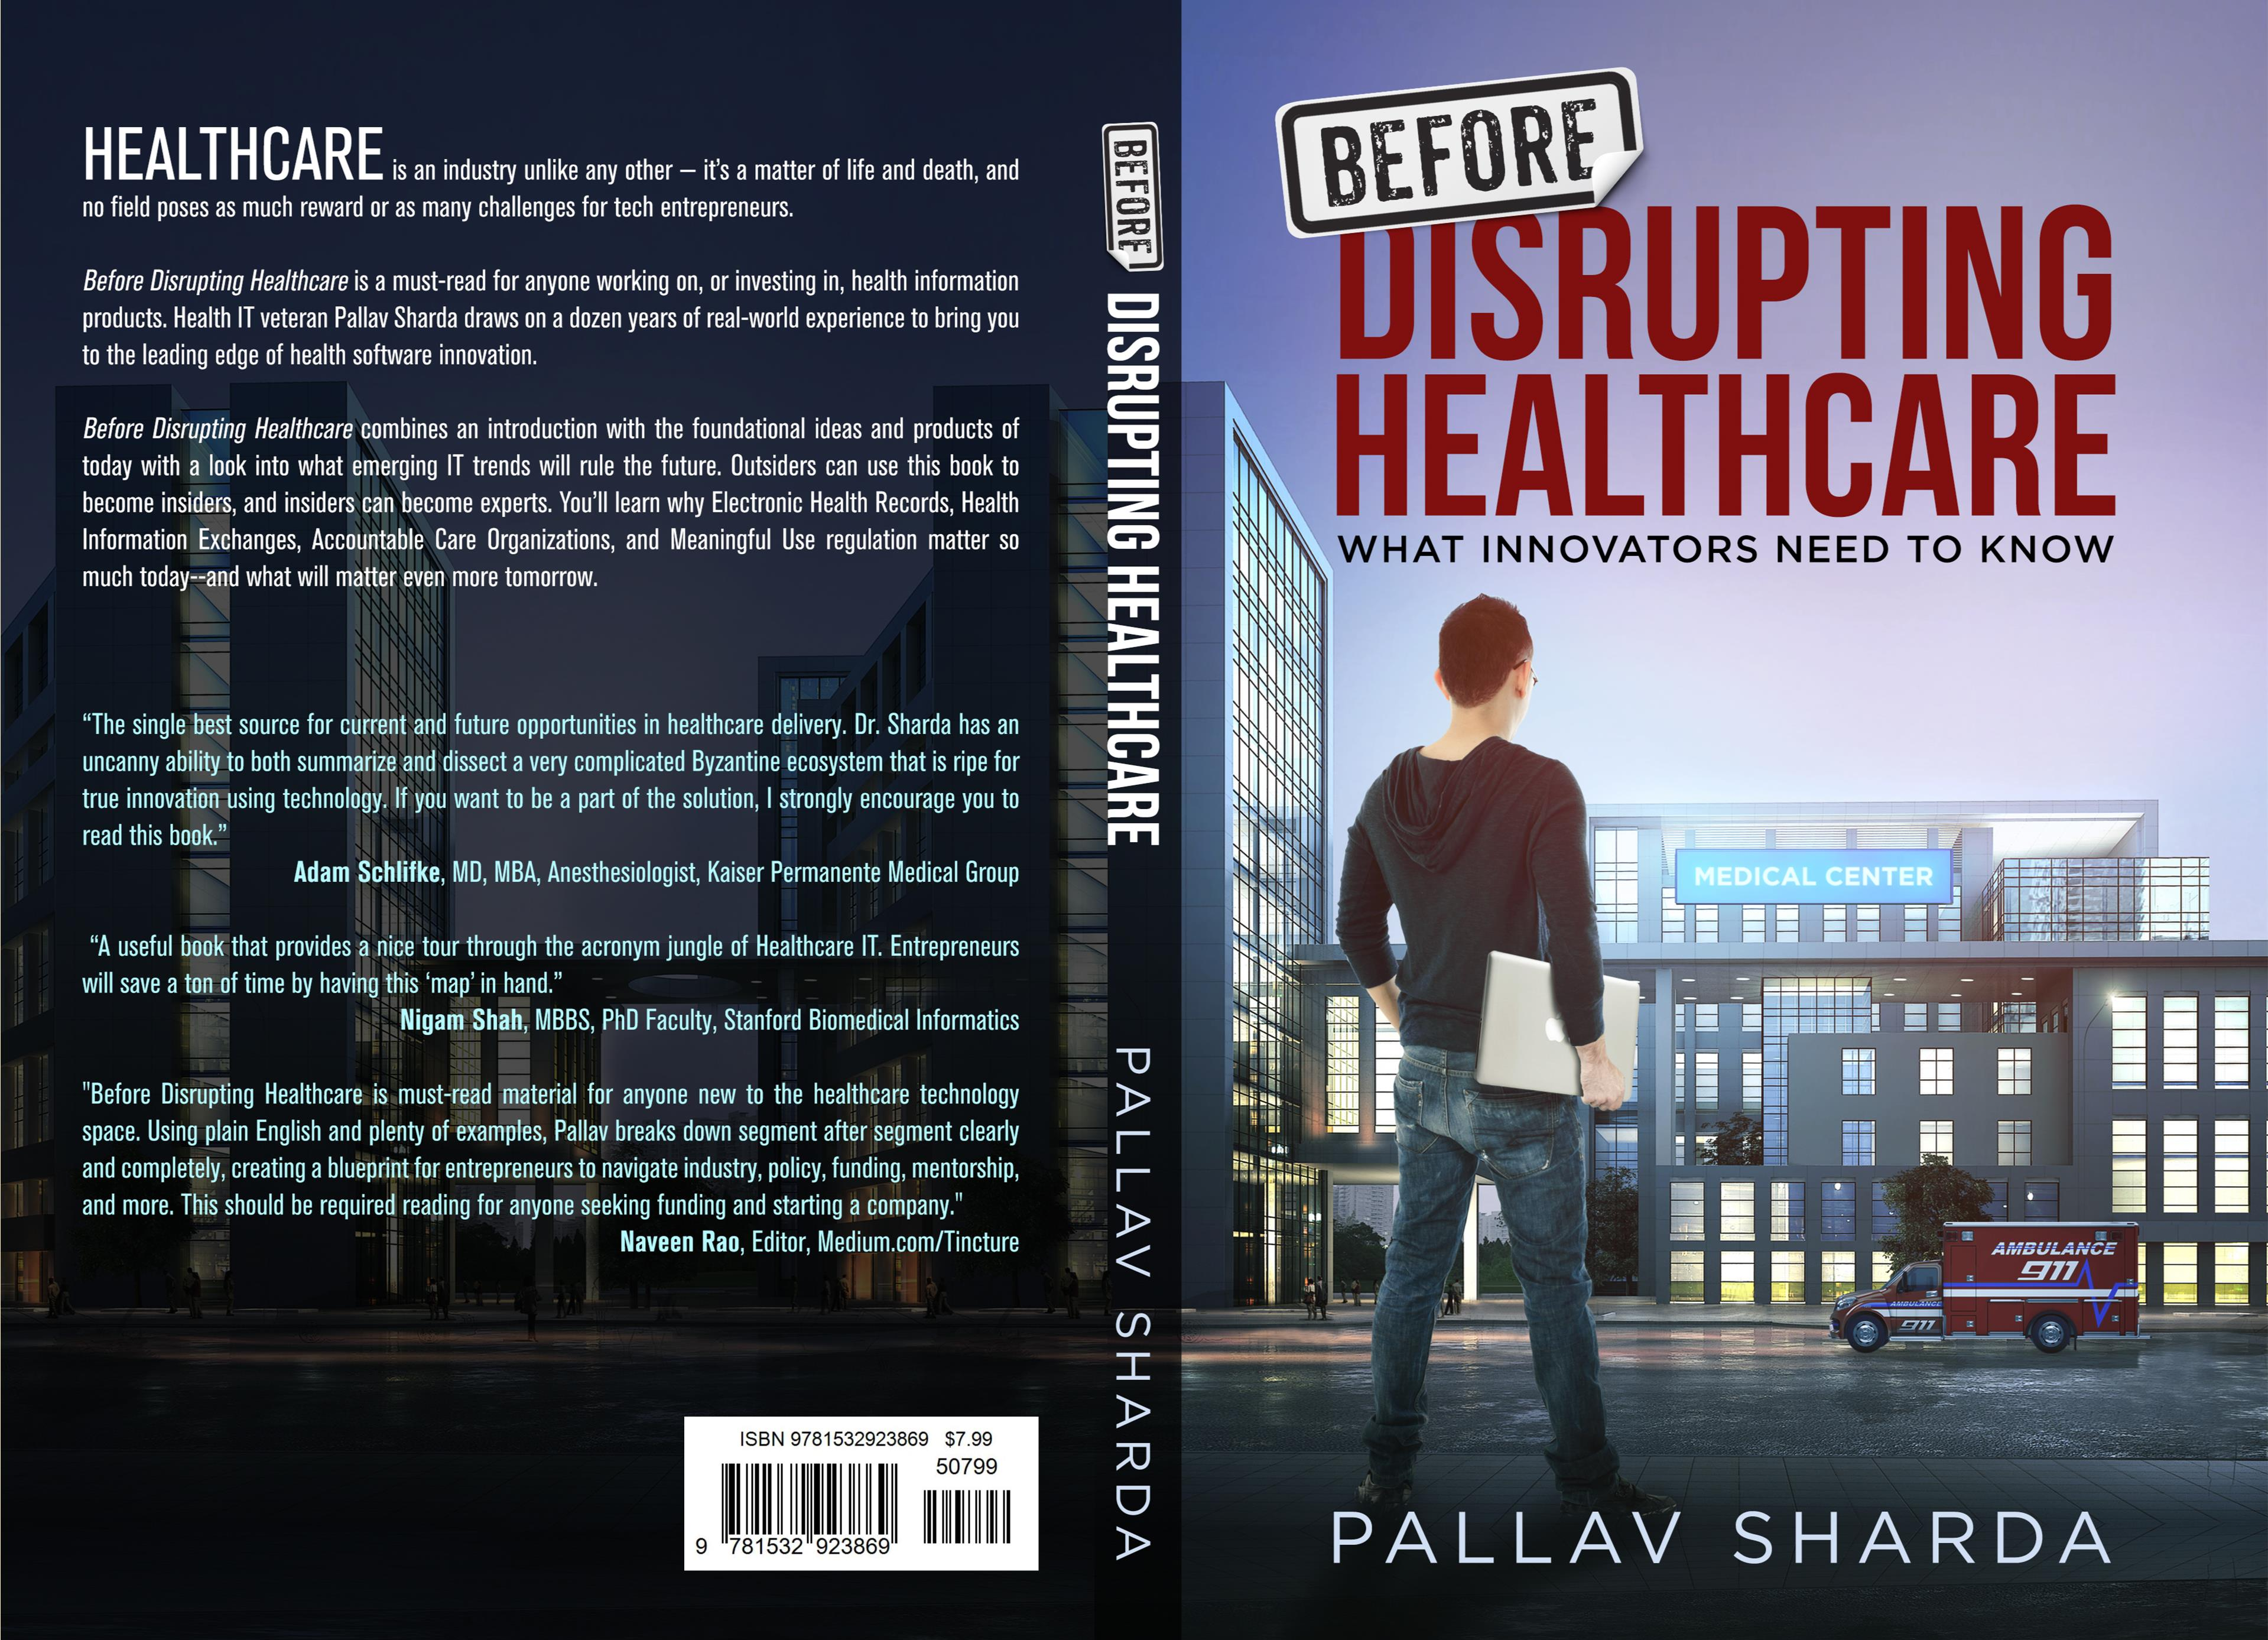 Before disrupting healthcare by pallav sharda 799 before disrupting healthcare cover image malvernweather Image collections